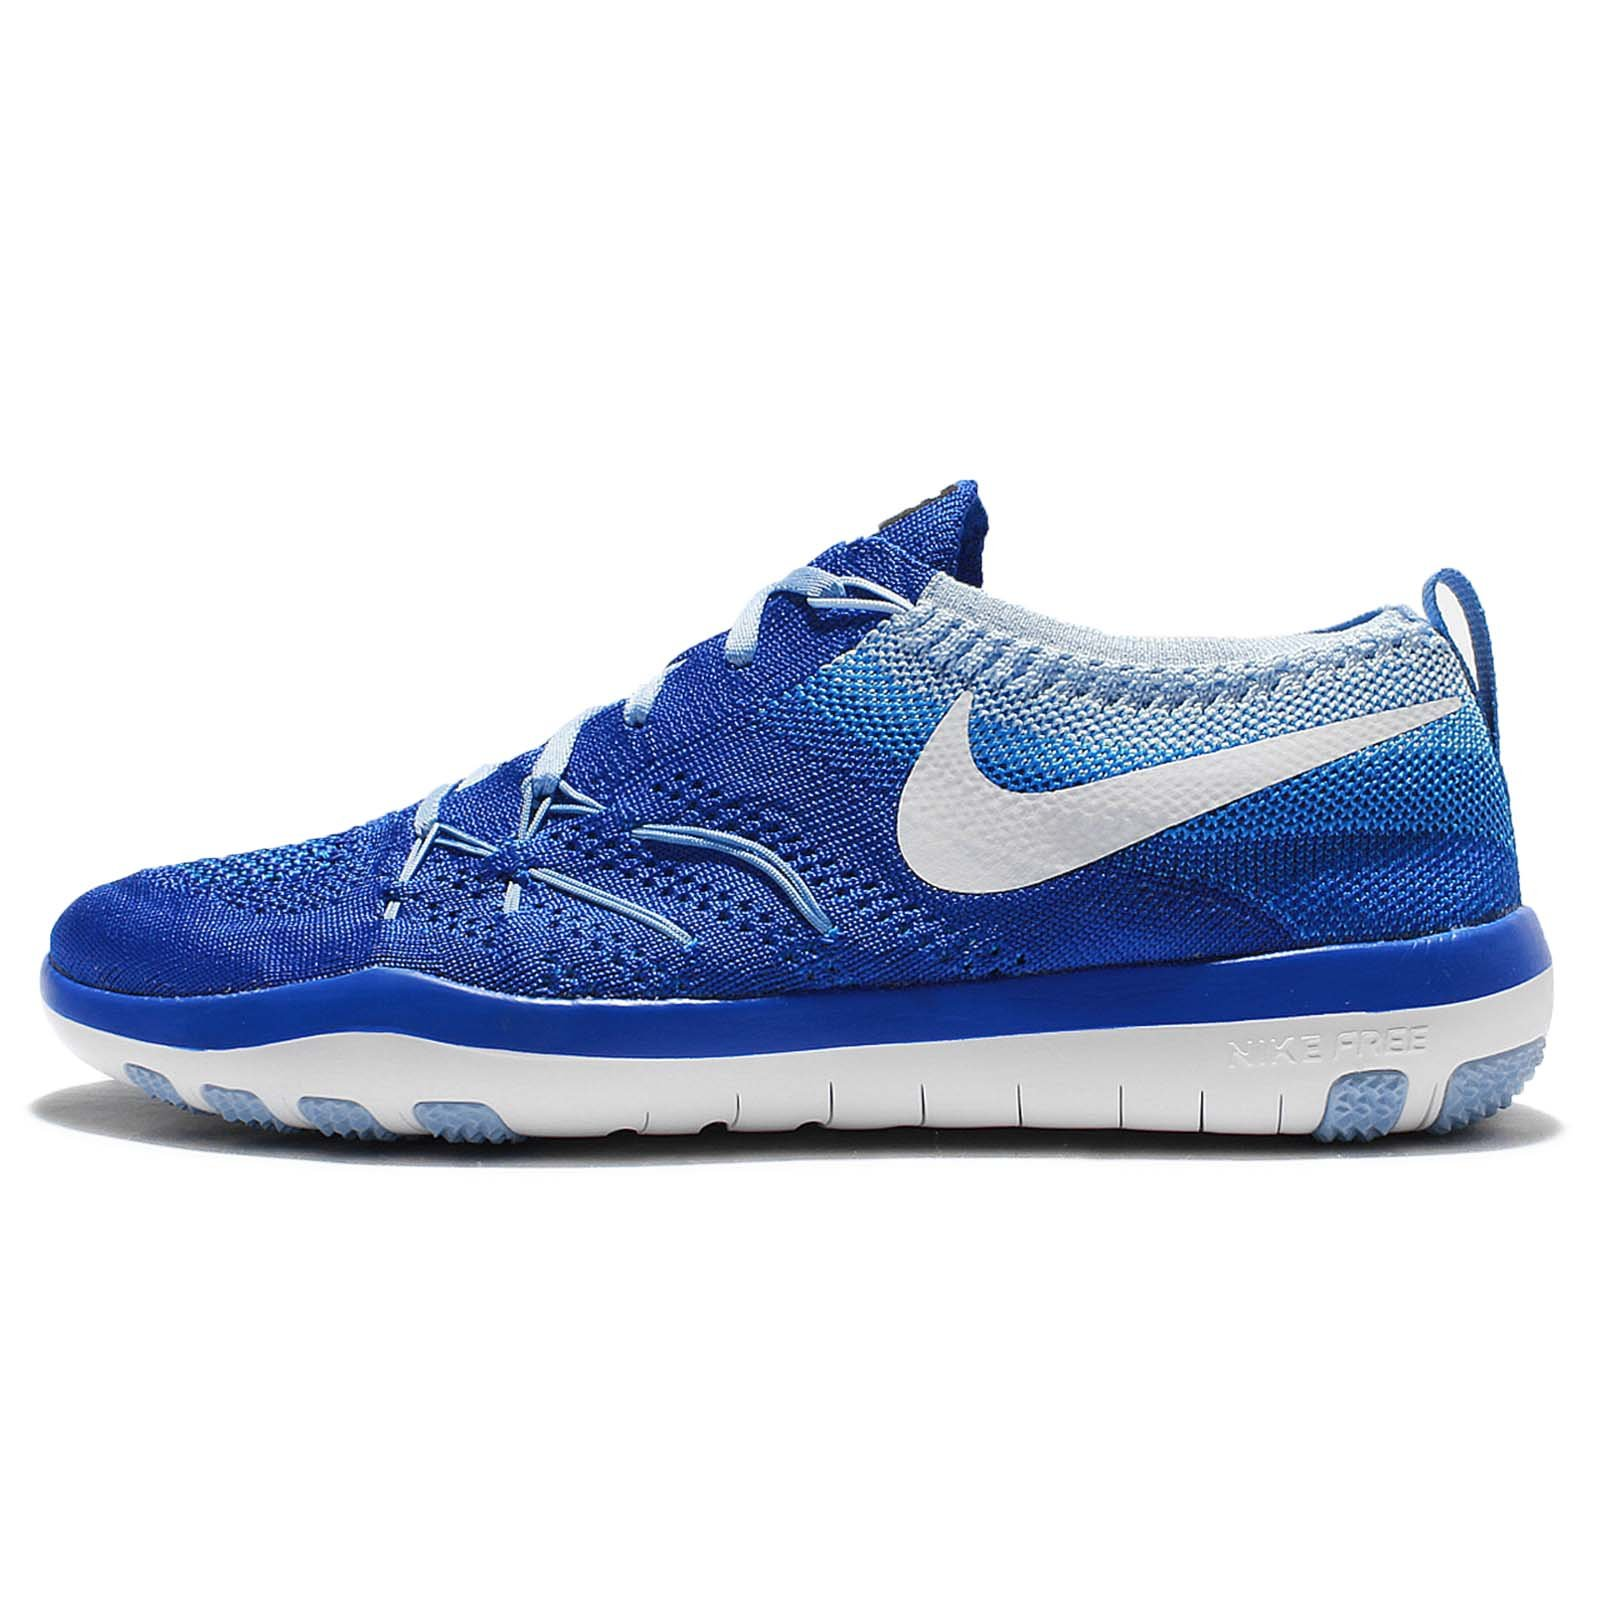 6fb43adf19ed6 Galleon - Nike Womens Free Focus Flyknit Training Sneakers From Finish Line